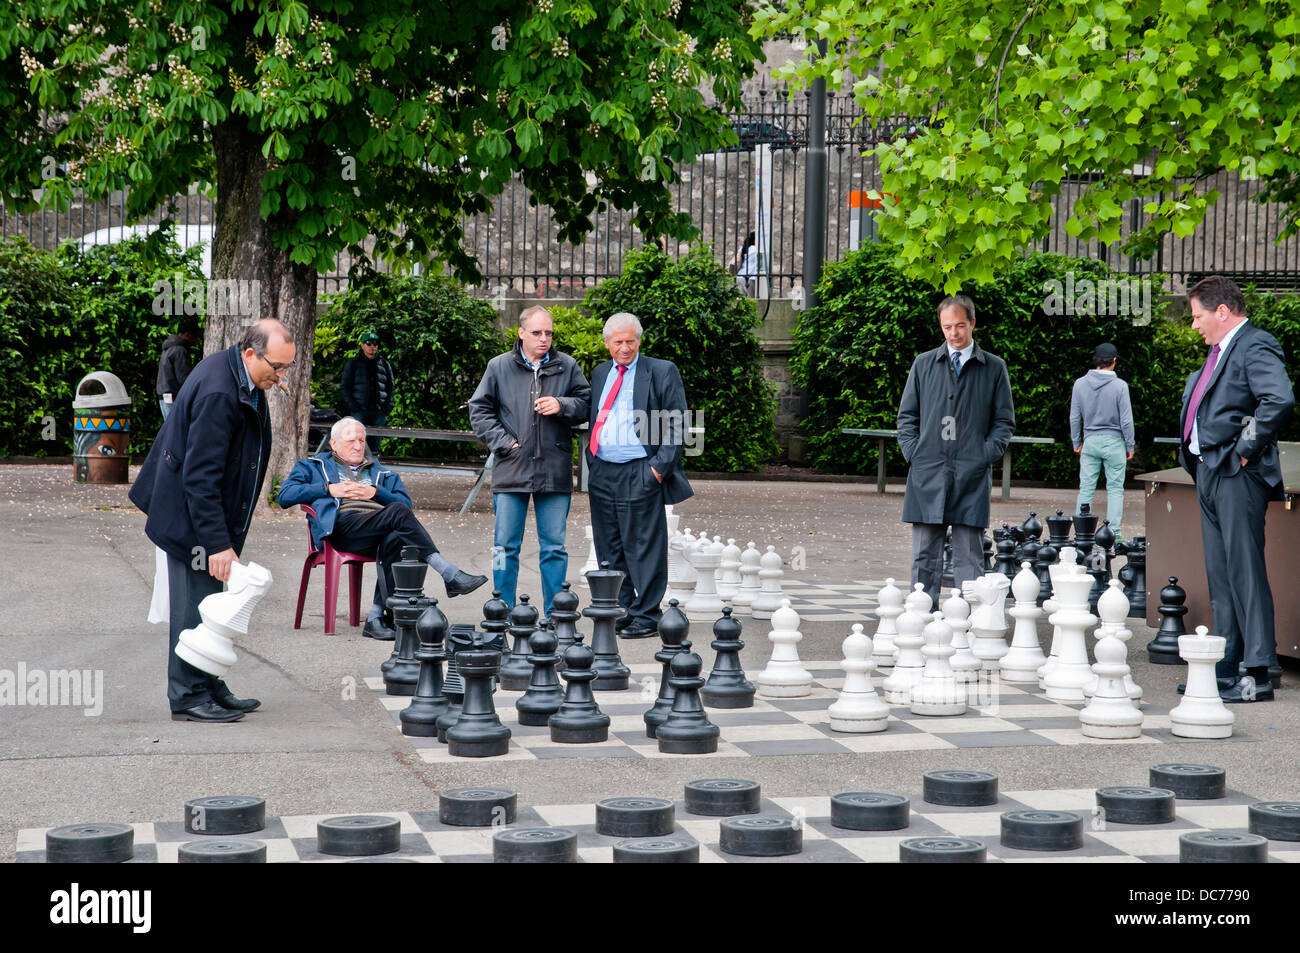 geneva people play chess in the park geneva switzerland europe stock photo royalty free image. Black Bedroom Furniture Sets. Home Design Ideas